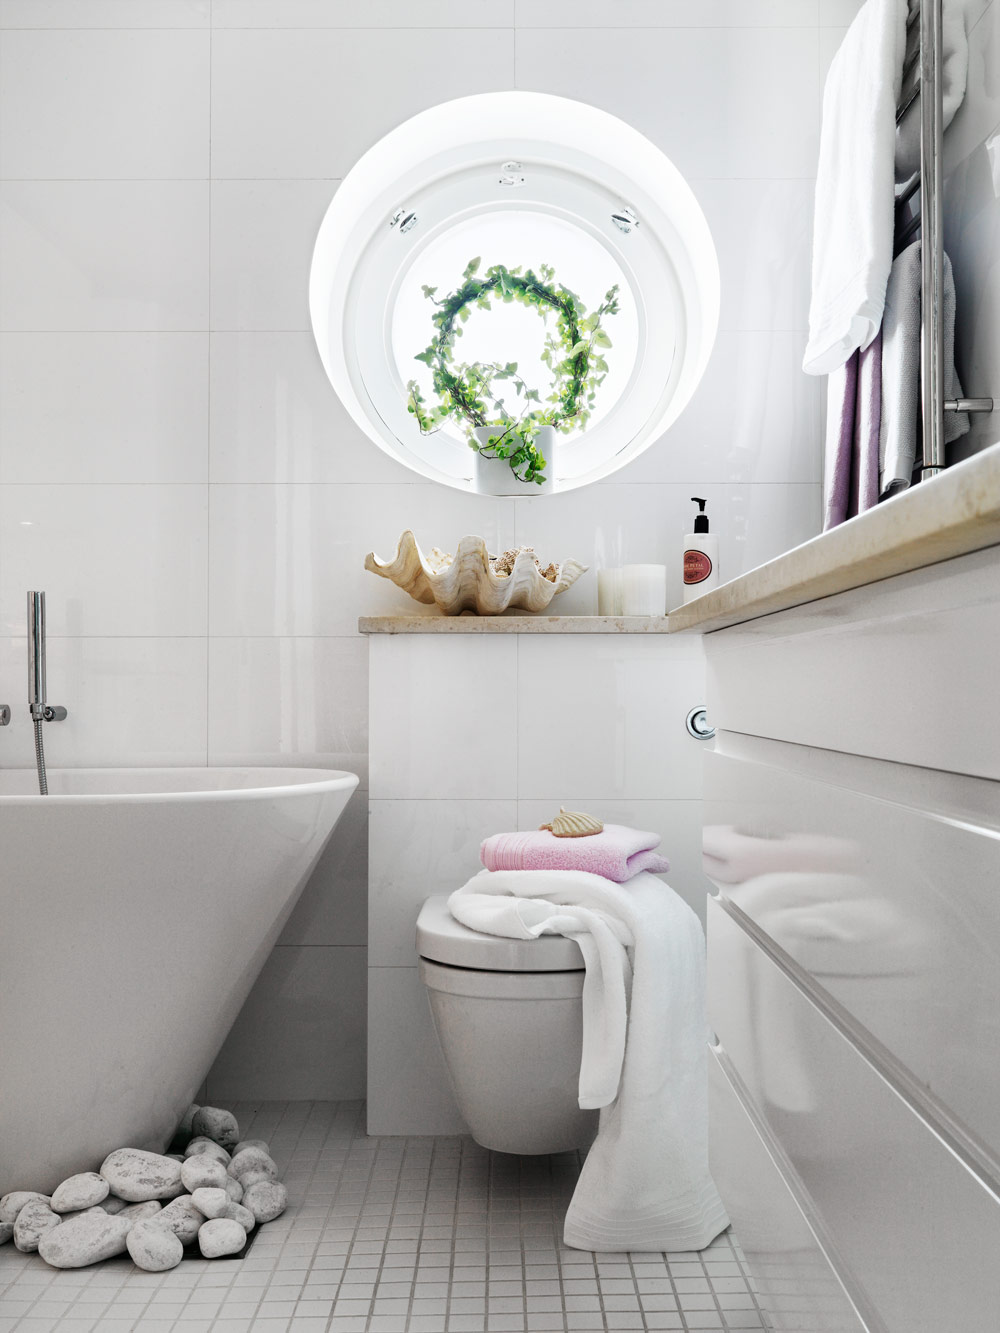 Stylish small bathroom with an unusual decor digsdigs for Unique small bathroom designs